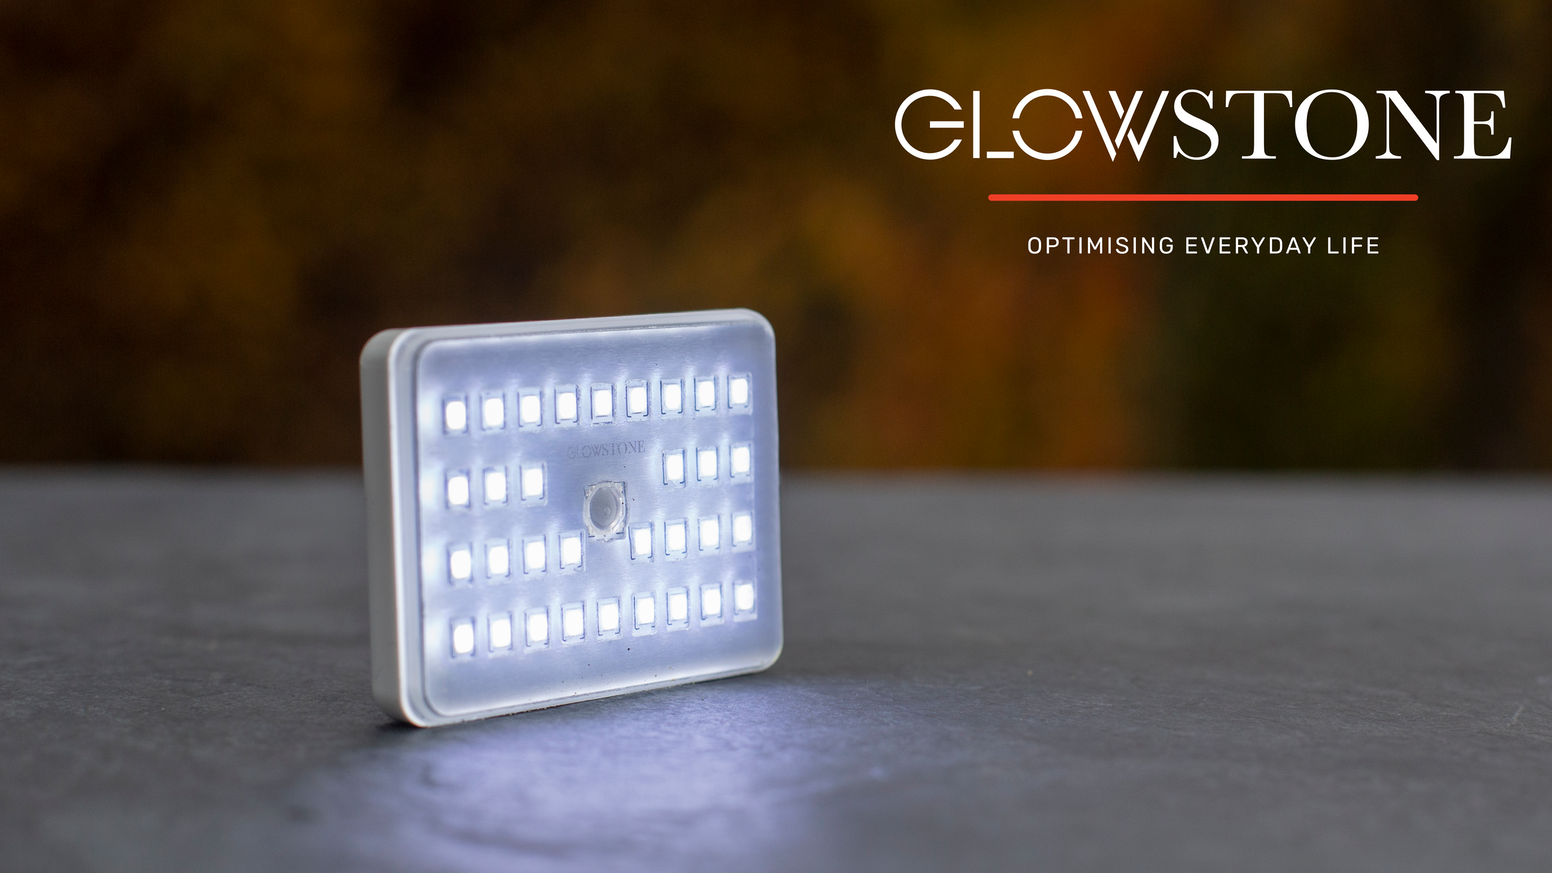 900 lumens, 8 modes, 10 accessories make Glowstone the most adaptable and brightest light. It's smaller than a credit card and less than 1/2 inch thick.